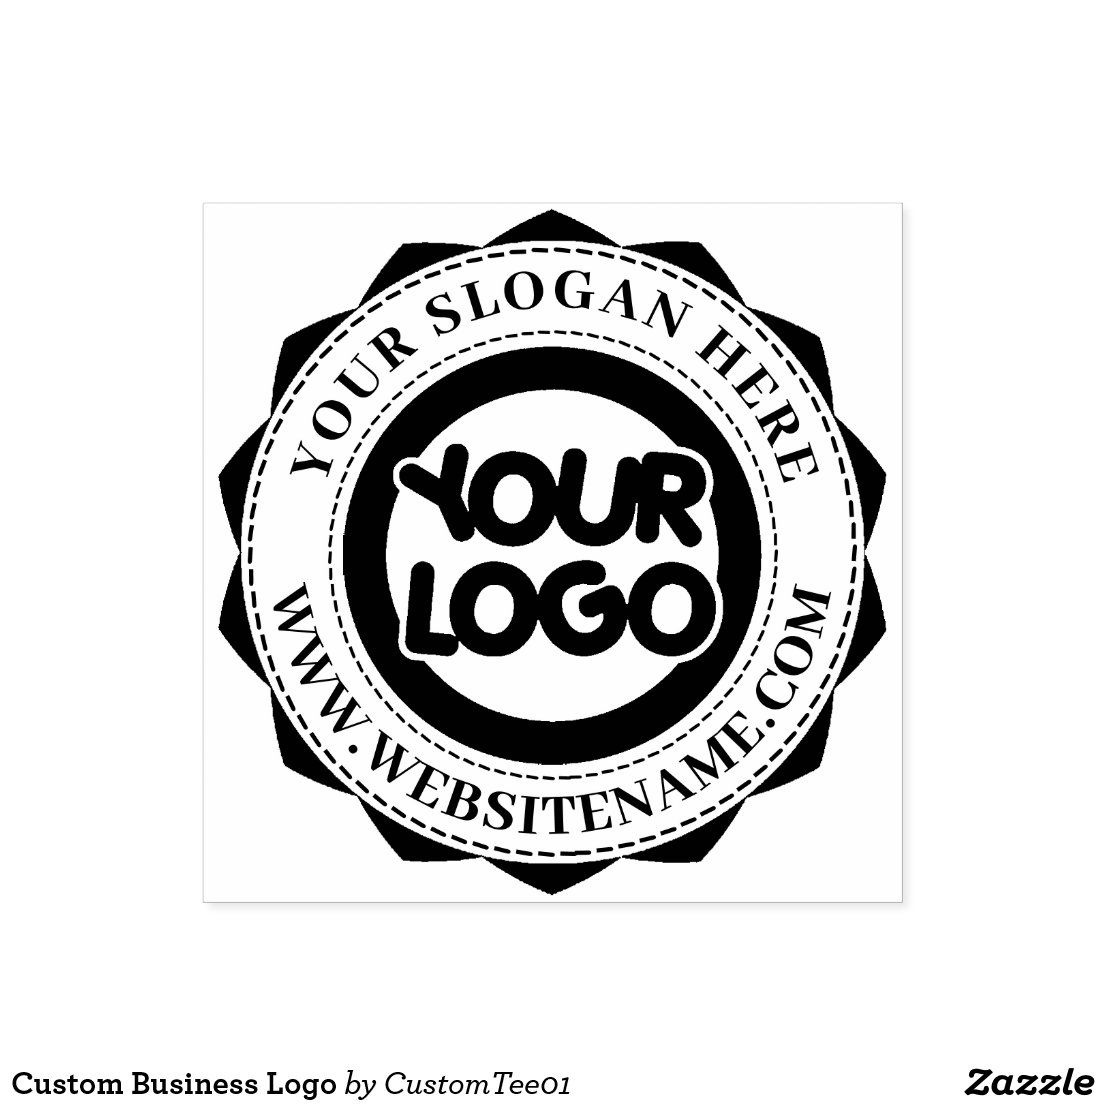 Custom Business Logo Rubber Stamp Zazzle Com In 2020 Ink Stamps Custom Stamps Stamp